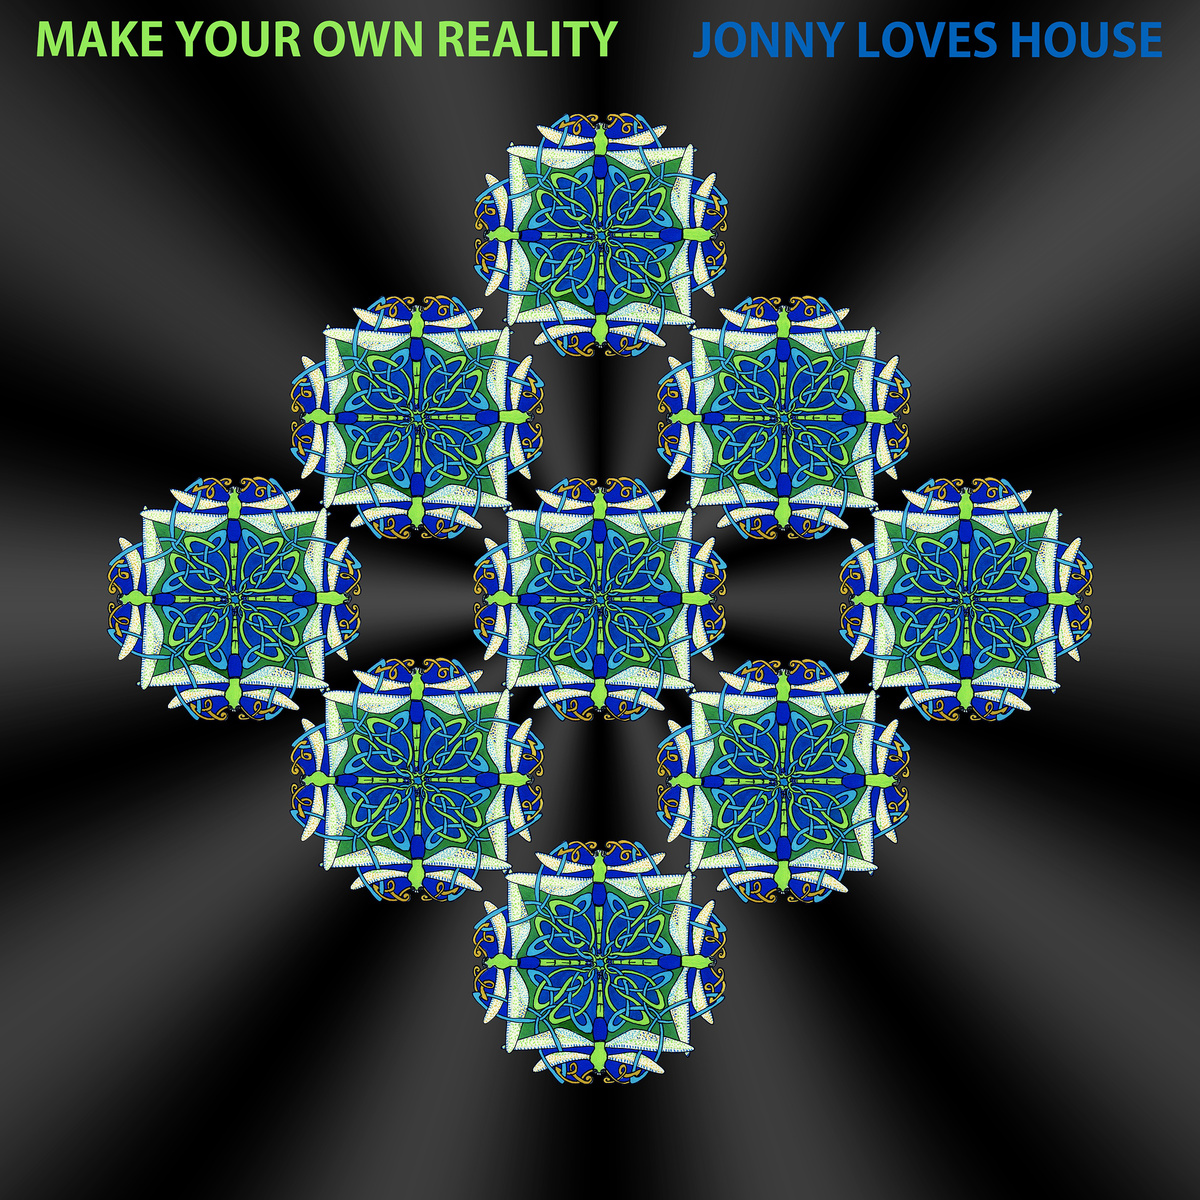 Jonny Loves House Make Your Own Reality Jlh 020